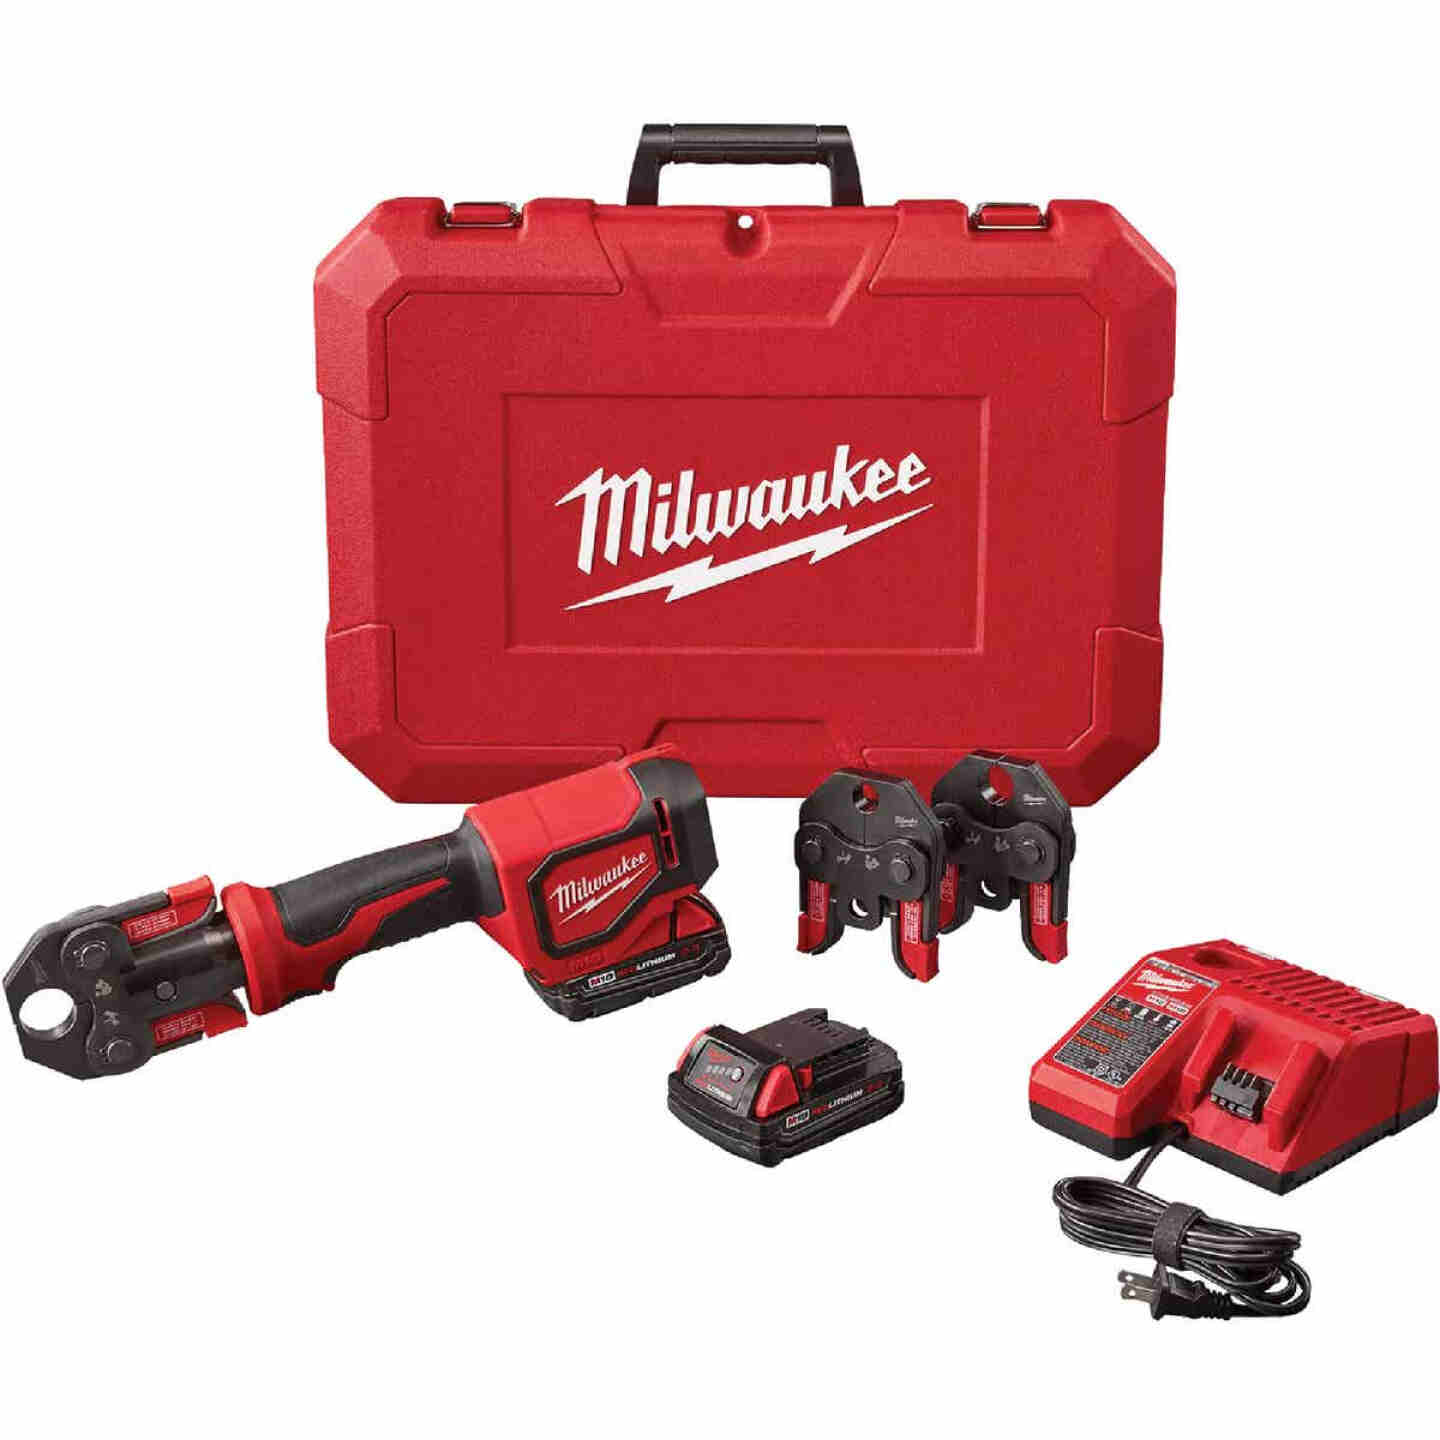 Milwaukee M12 12 Volt Force Logic Lithium-Ion Cordless Press Tool Kit (3 Jaws Included) Image 1